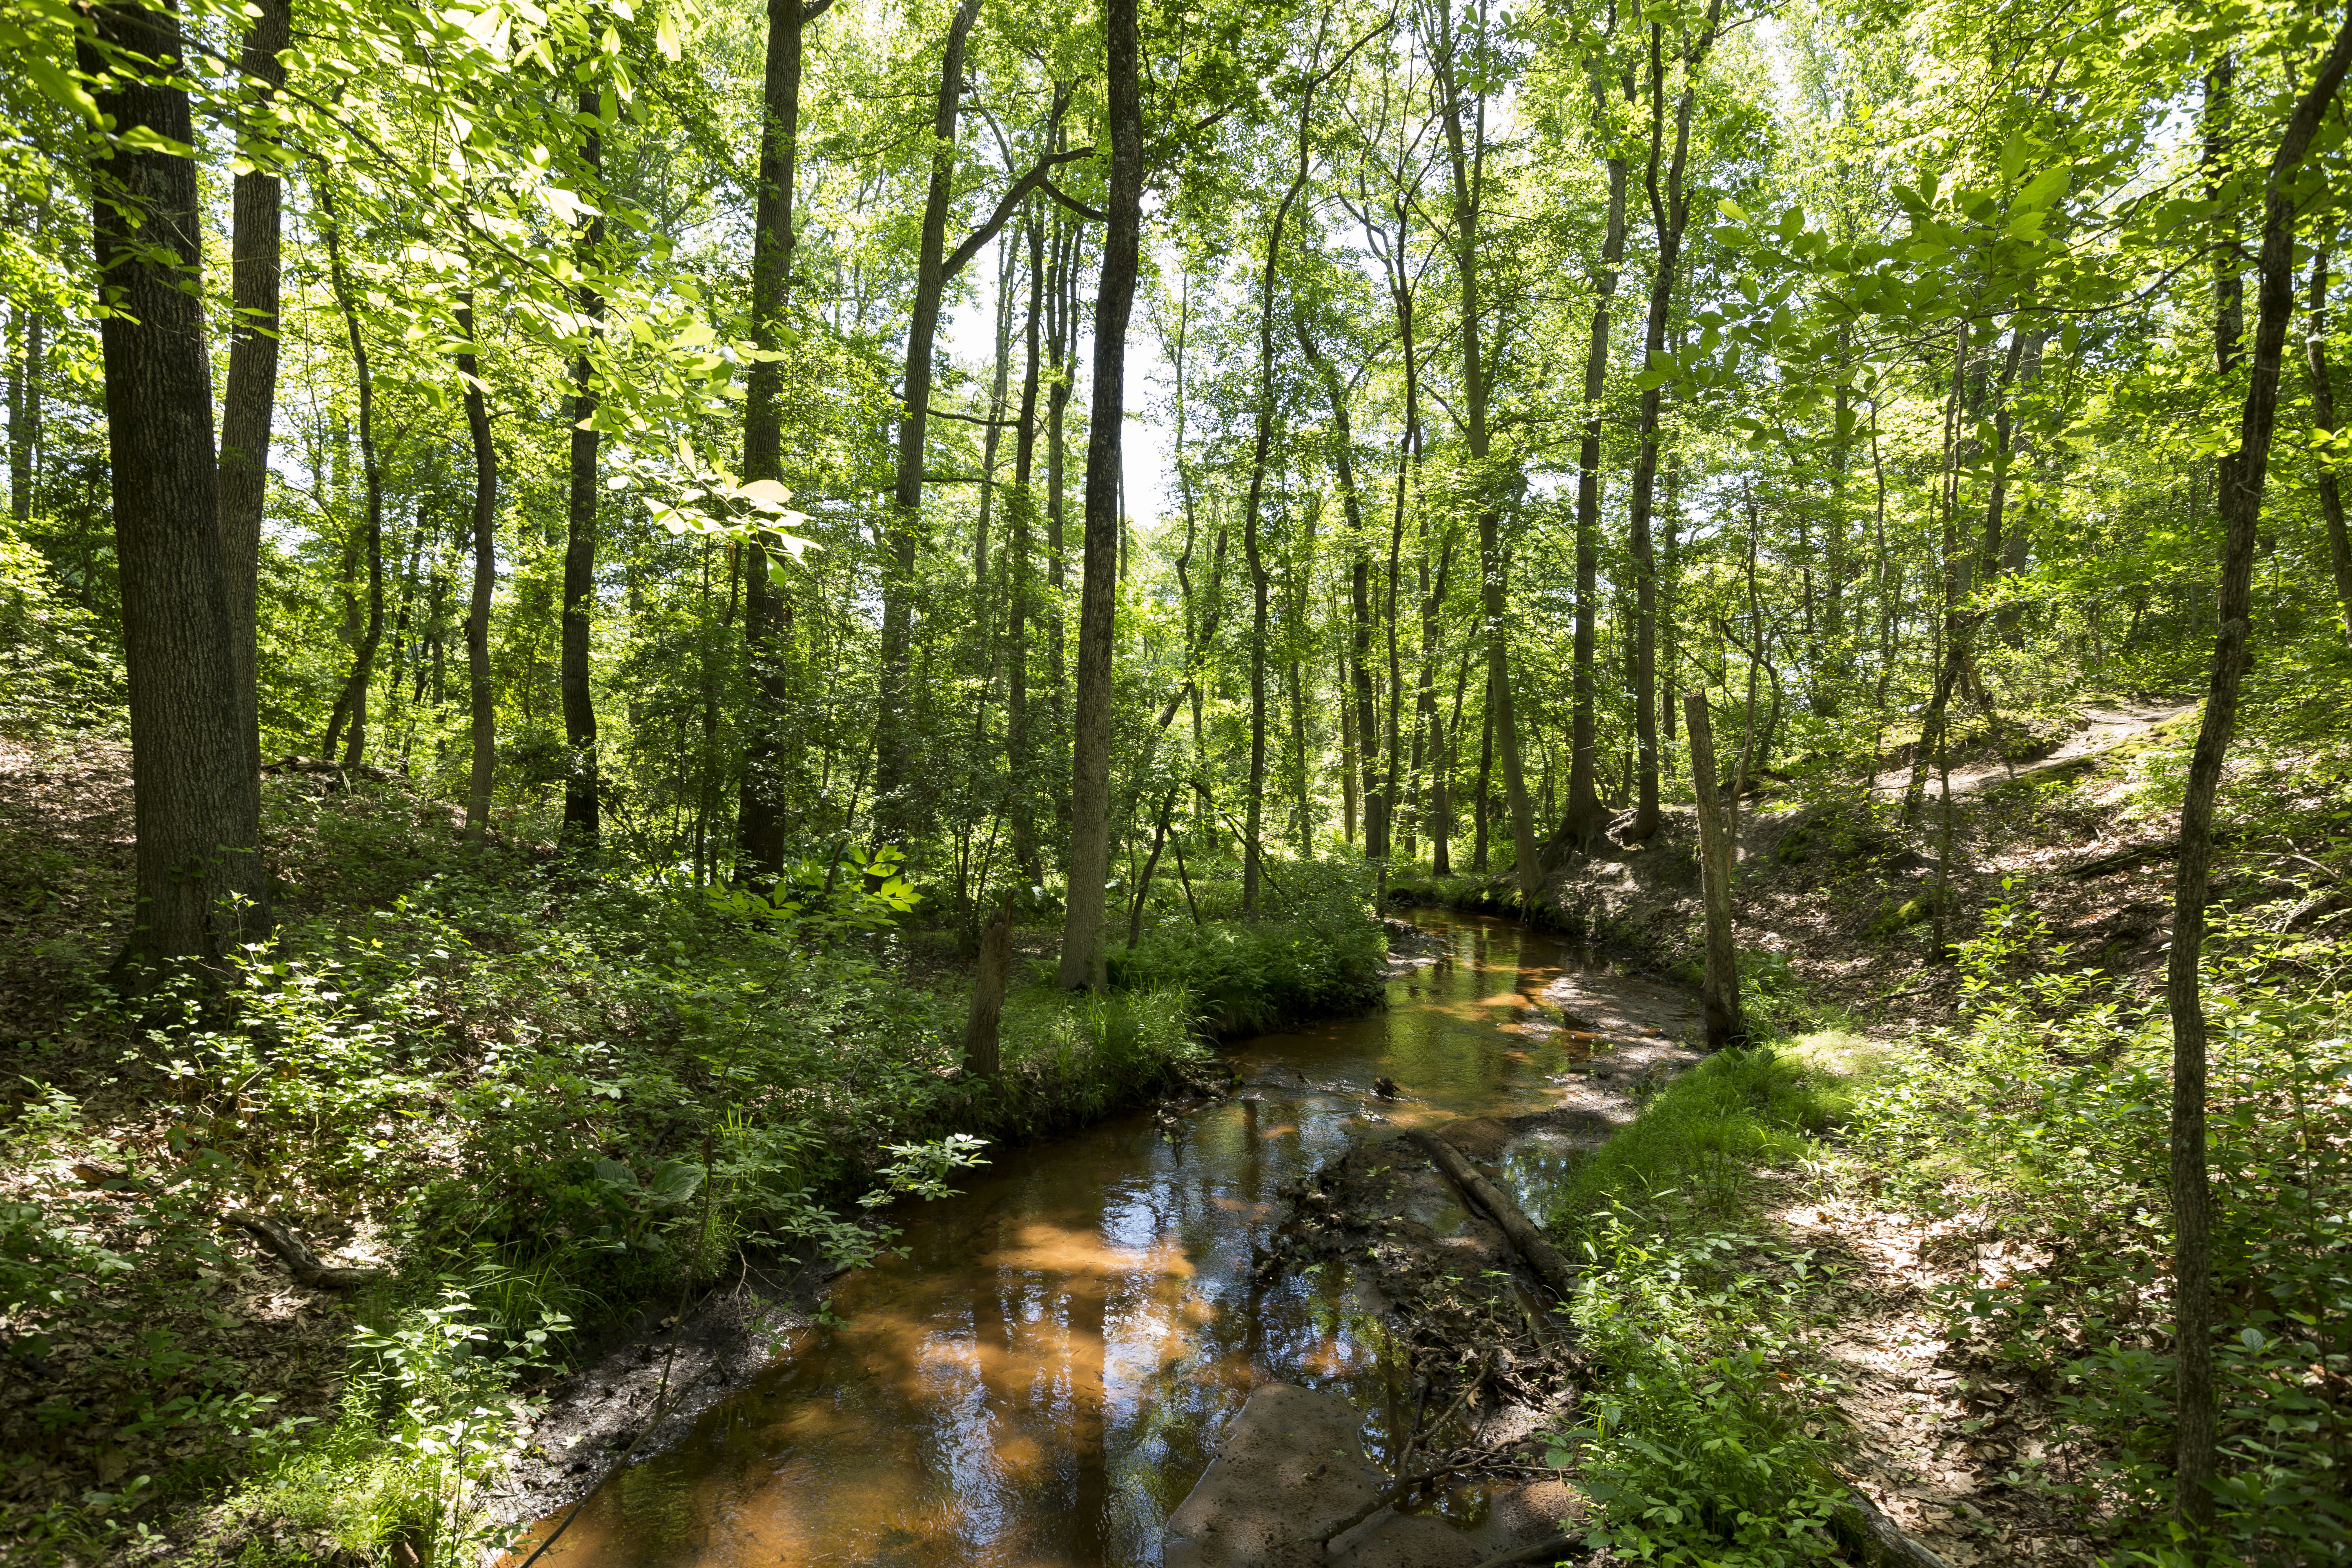 Creek winding through wooded area